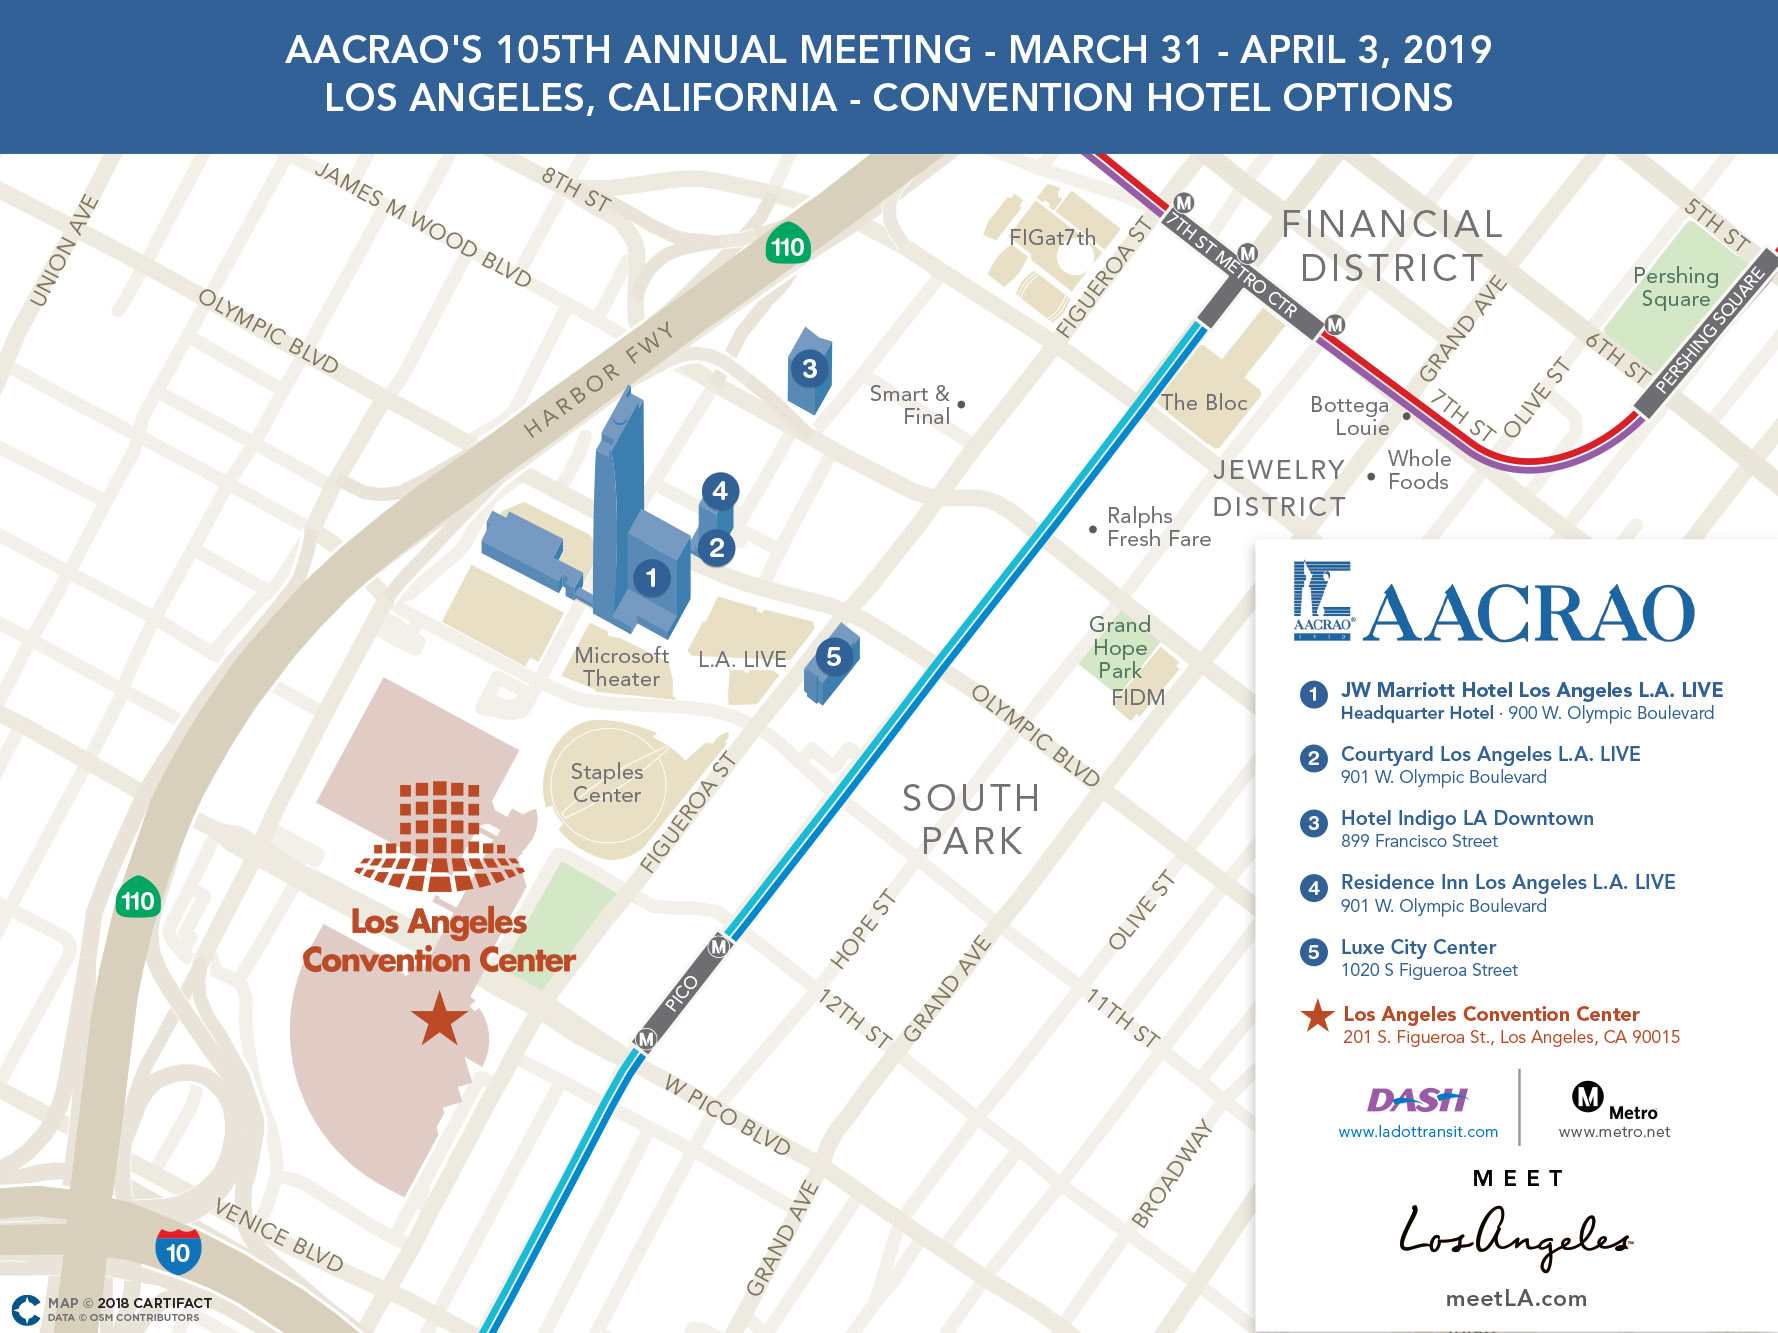 2019 Annual Meeting -  Map of Hotels